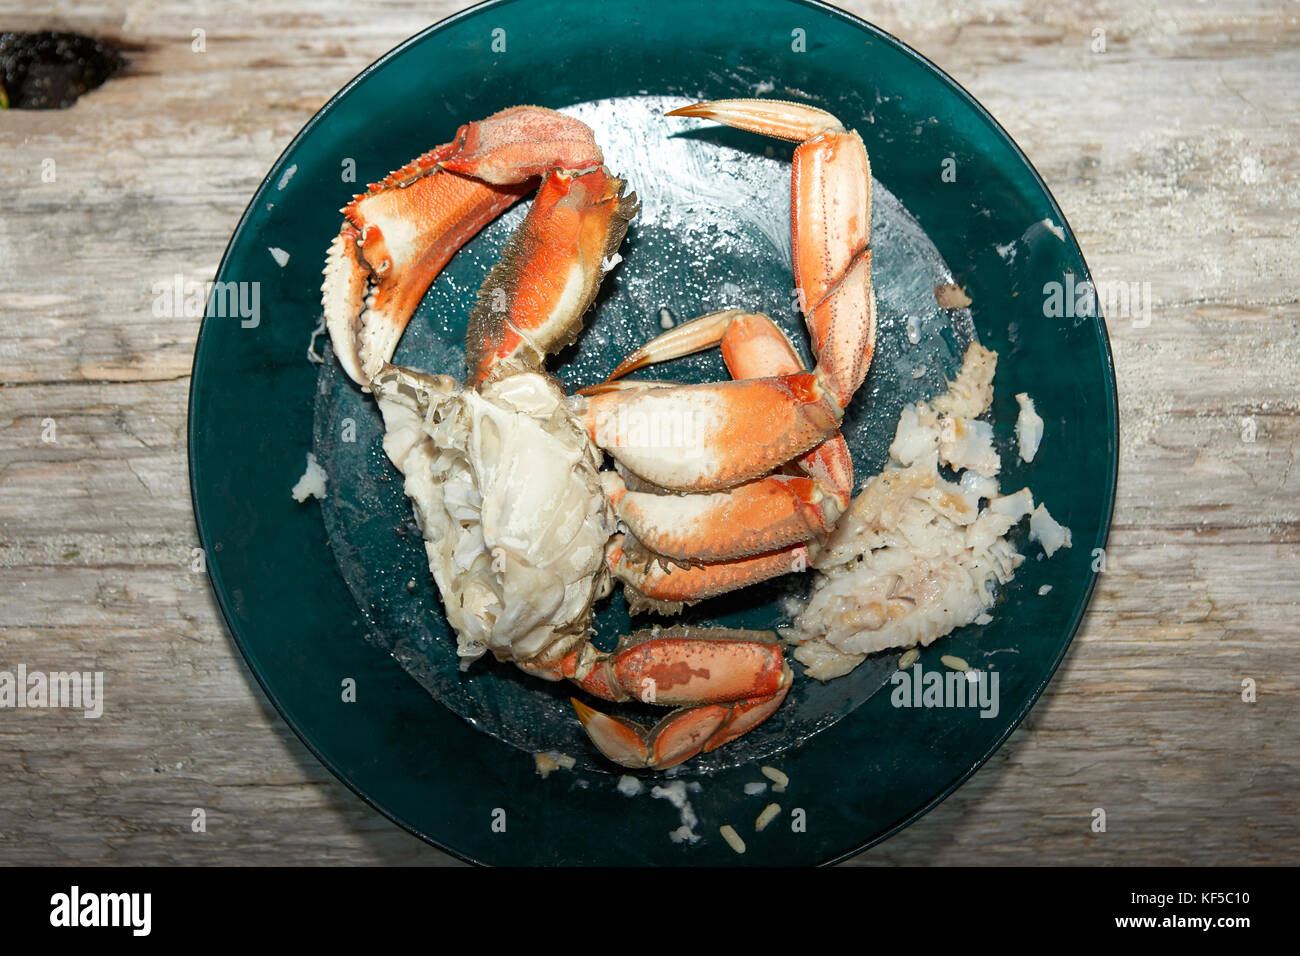 Half a cooked marine crab on a plate showing a single large pincer or claw and legs with extracted meat - Stock Image